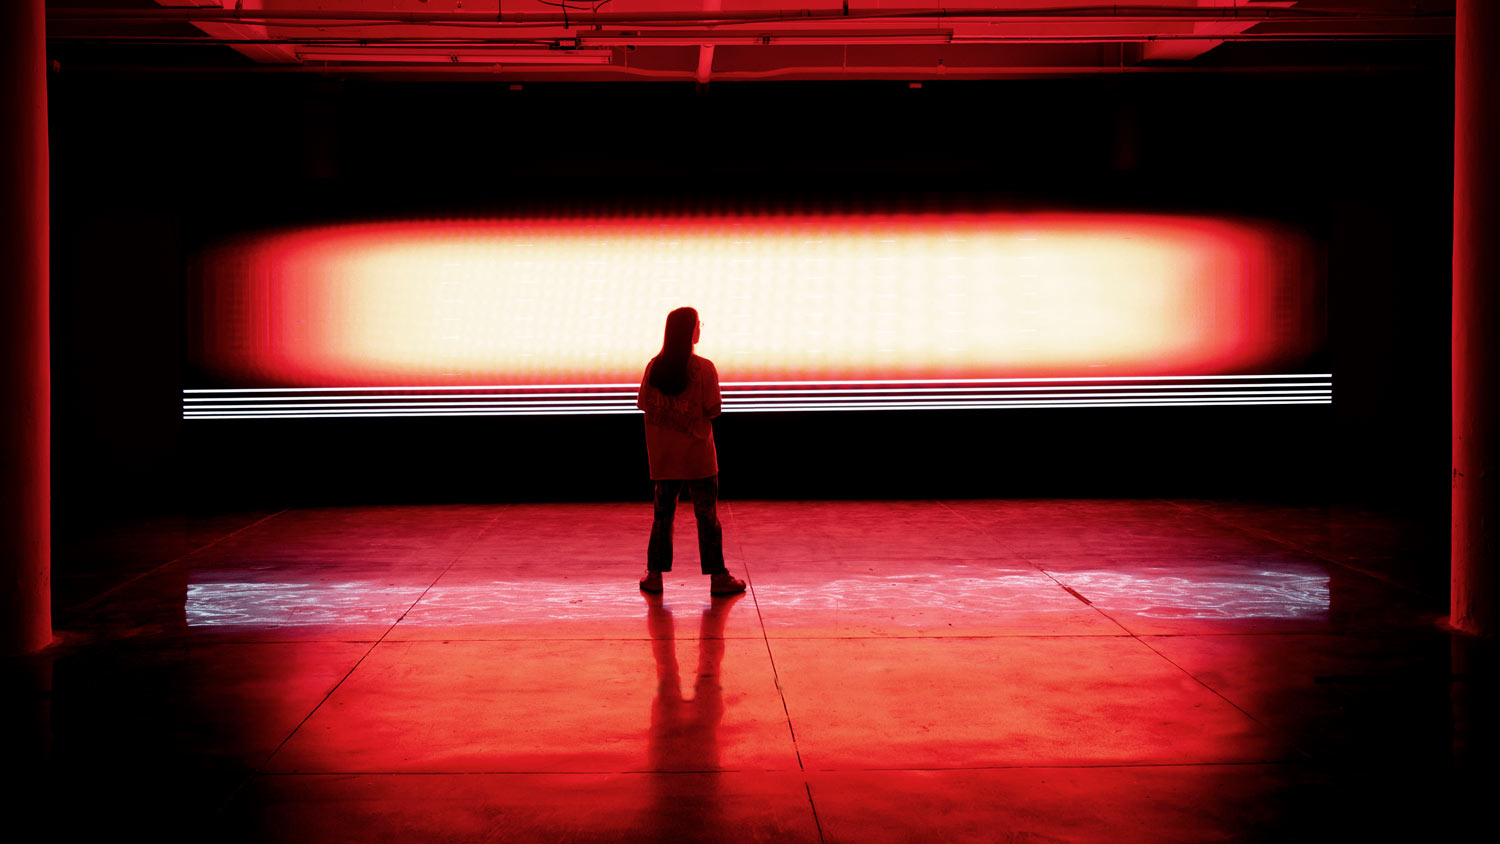 a strip of red light in a completely dar space, shadows of people in the foreground.